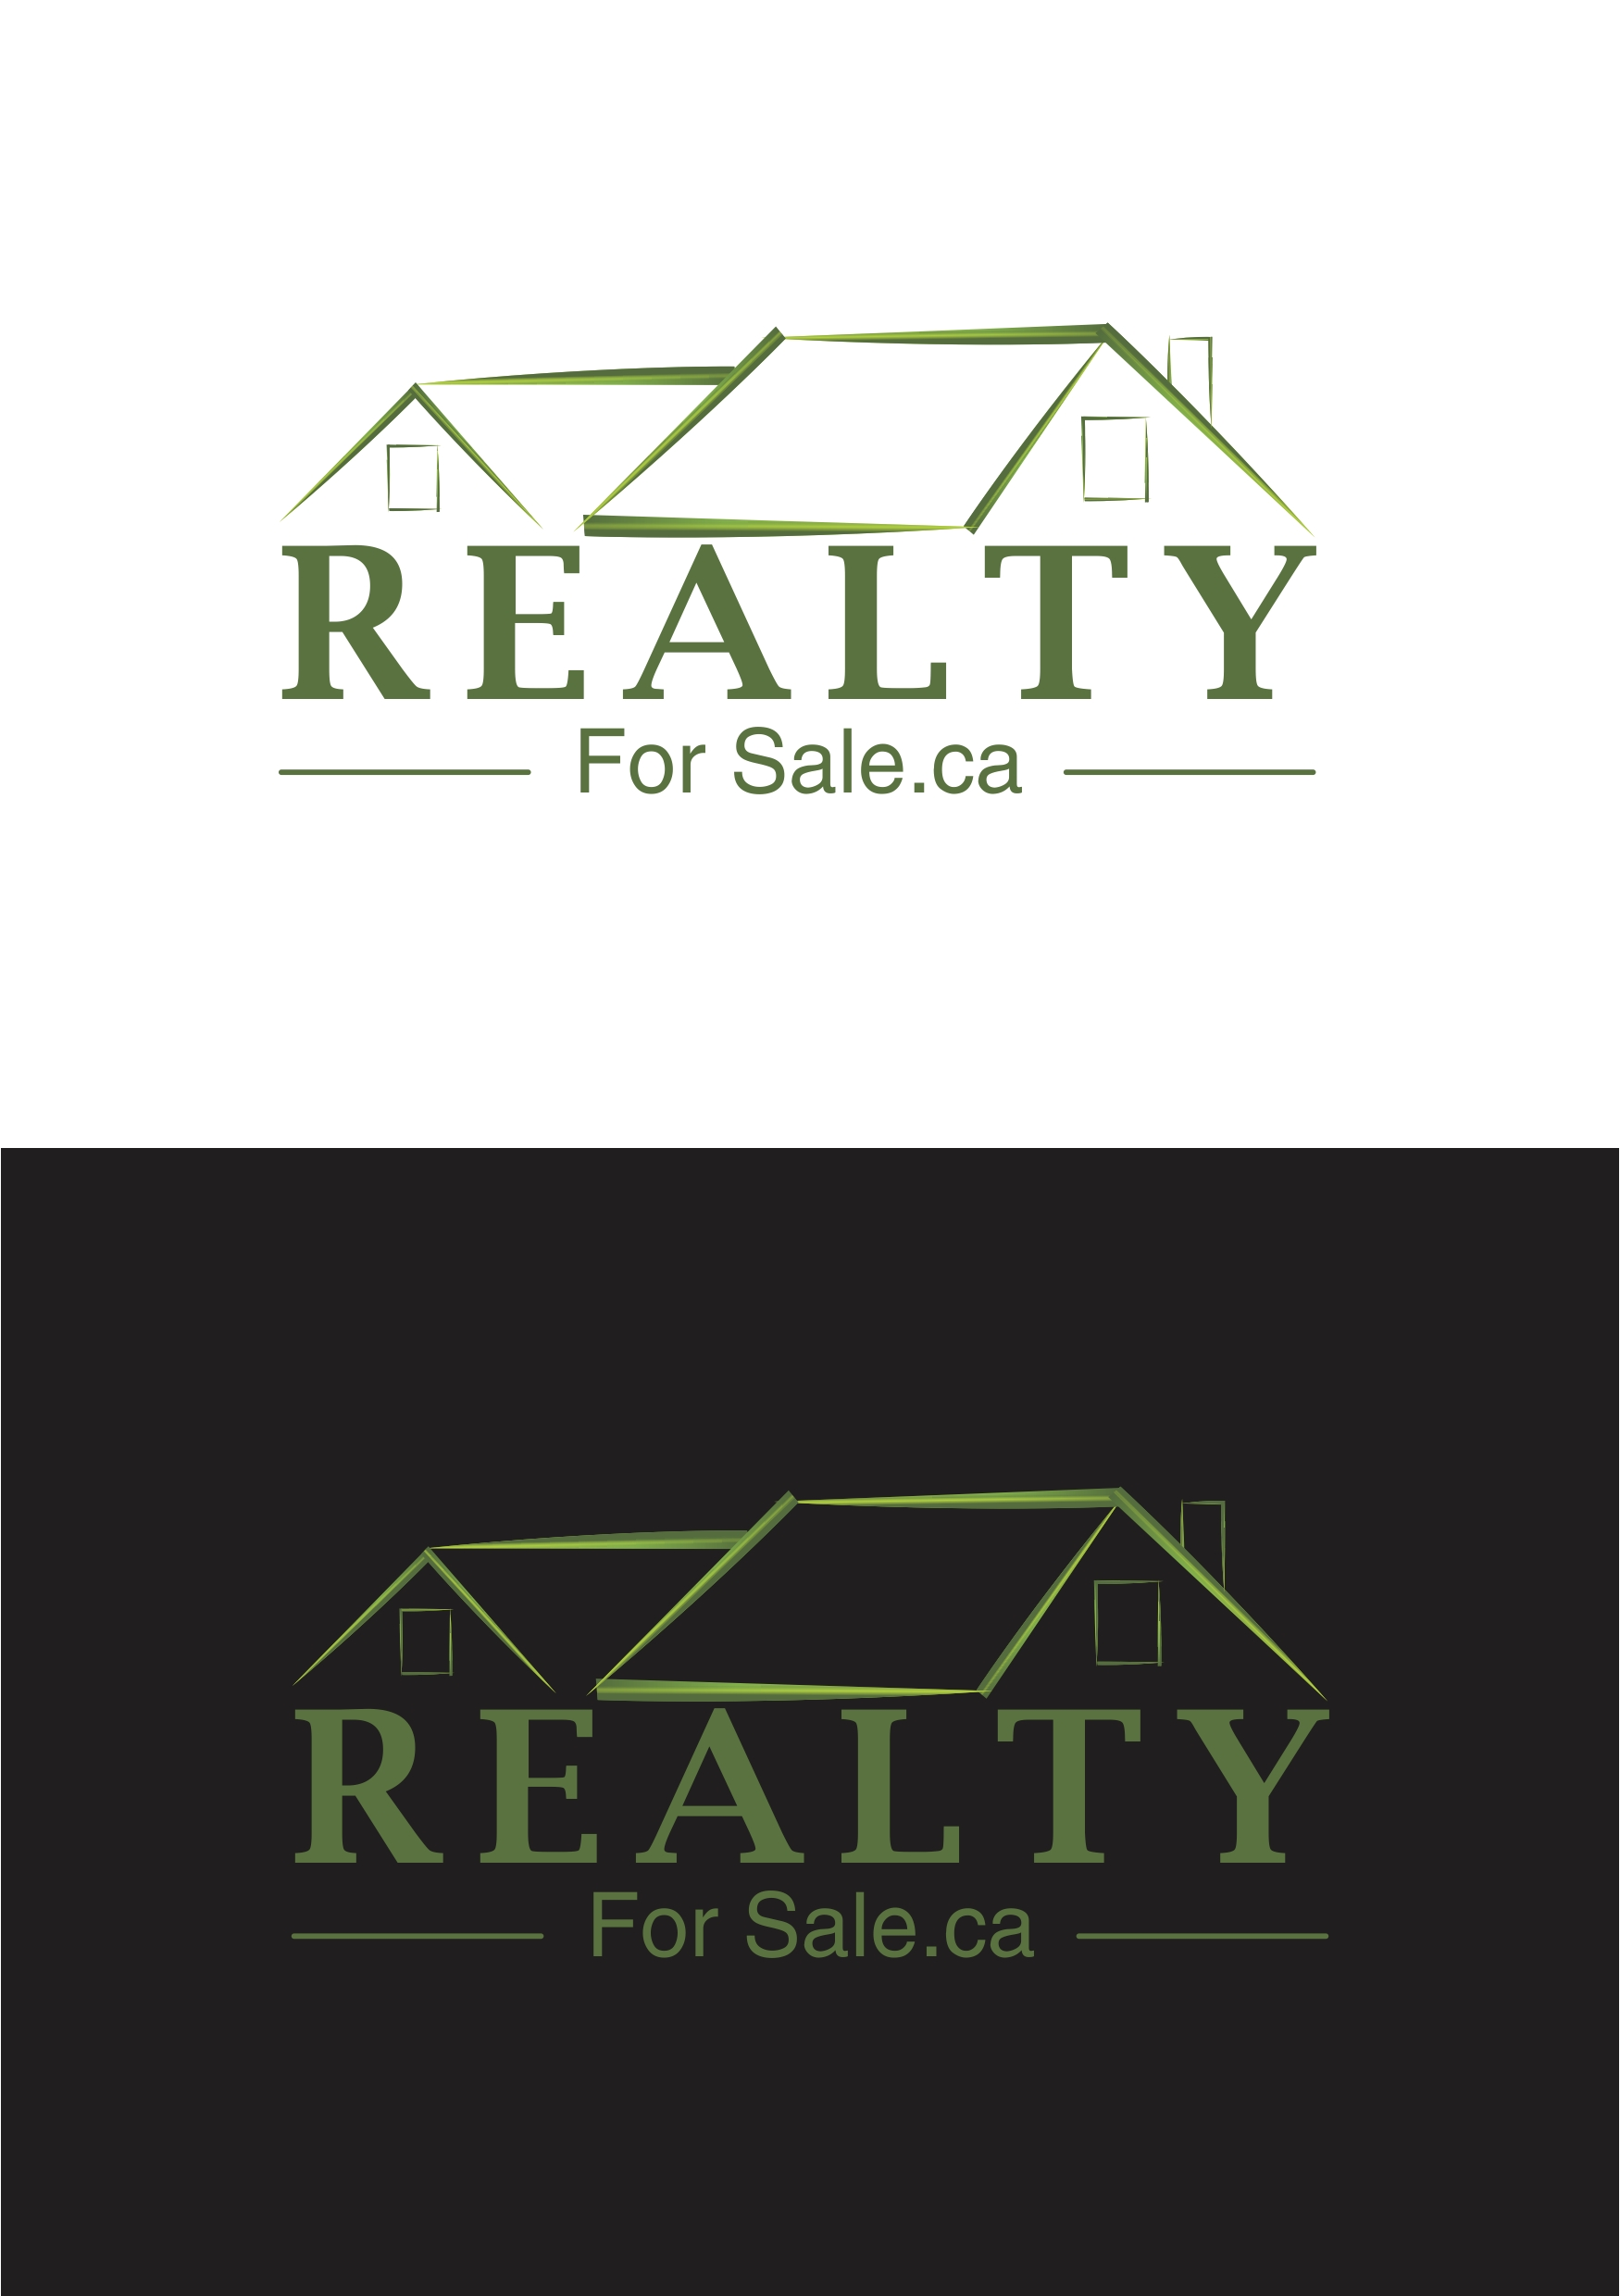 Logo Design by Ramesh Pandey - Entry No. 63 in the Logo Design Contest Inspiring Logo Design for RealtyForSale.ca.